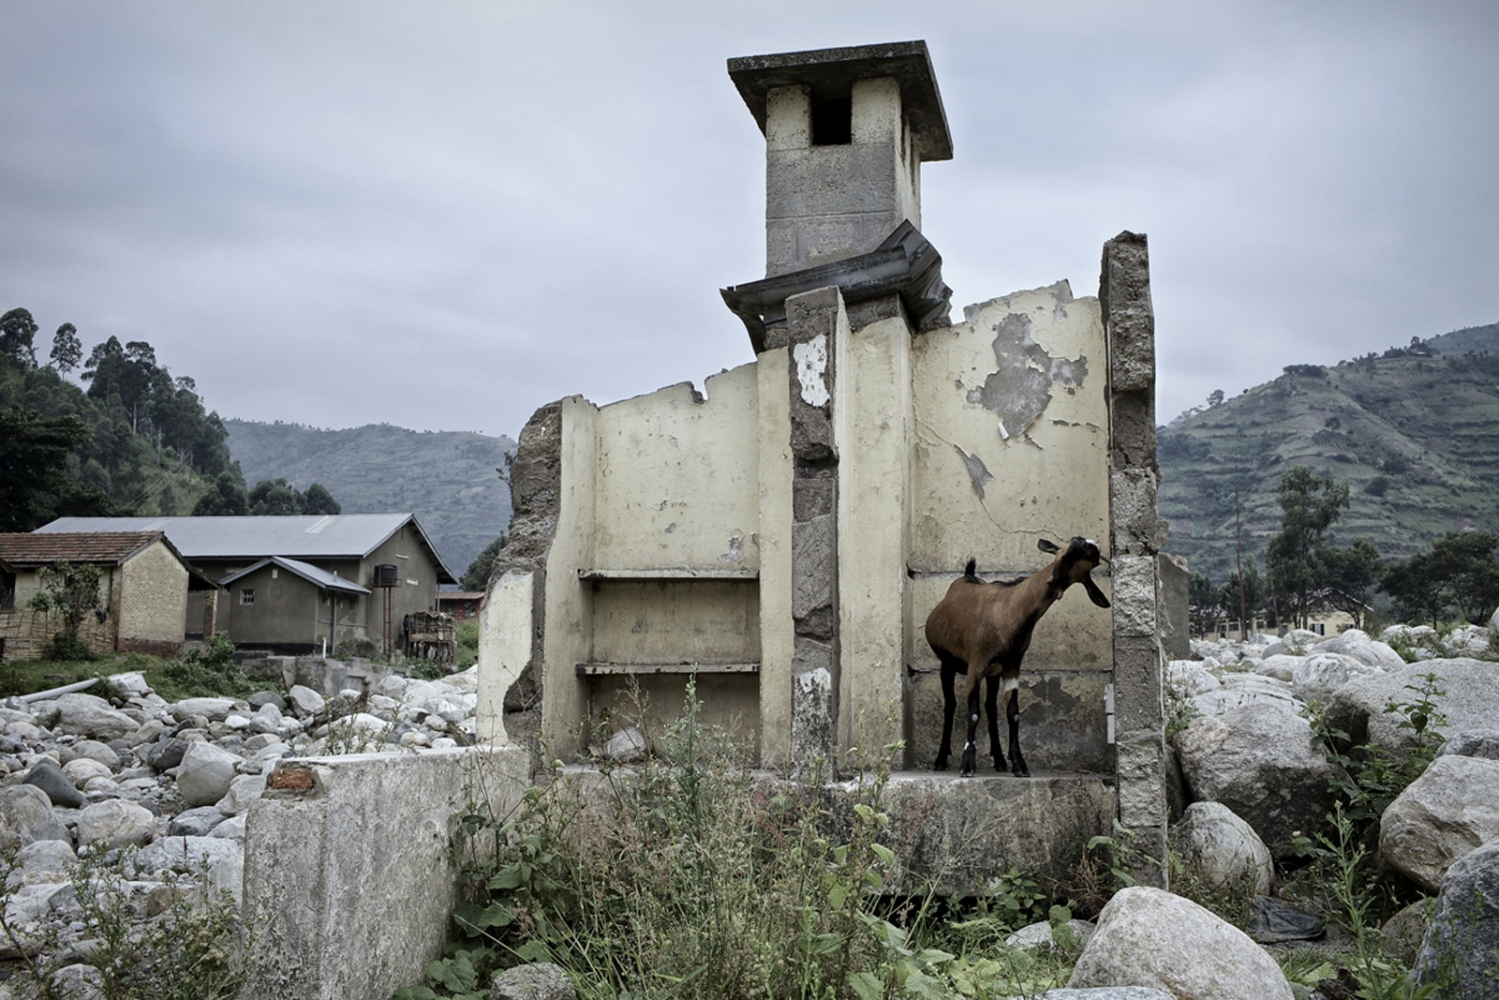 Art and Documentary Photography - Loading Fotovisura Grant 2015_ABANDONED after the fury of the flood_003.JPG